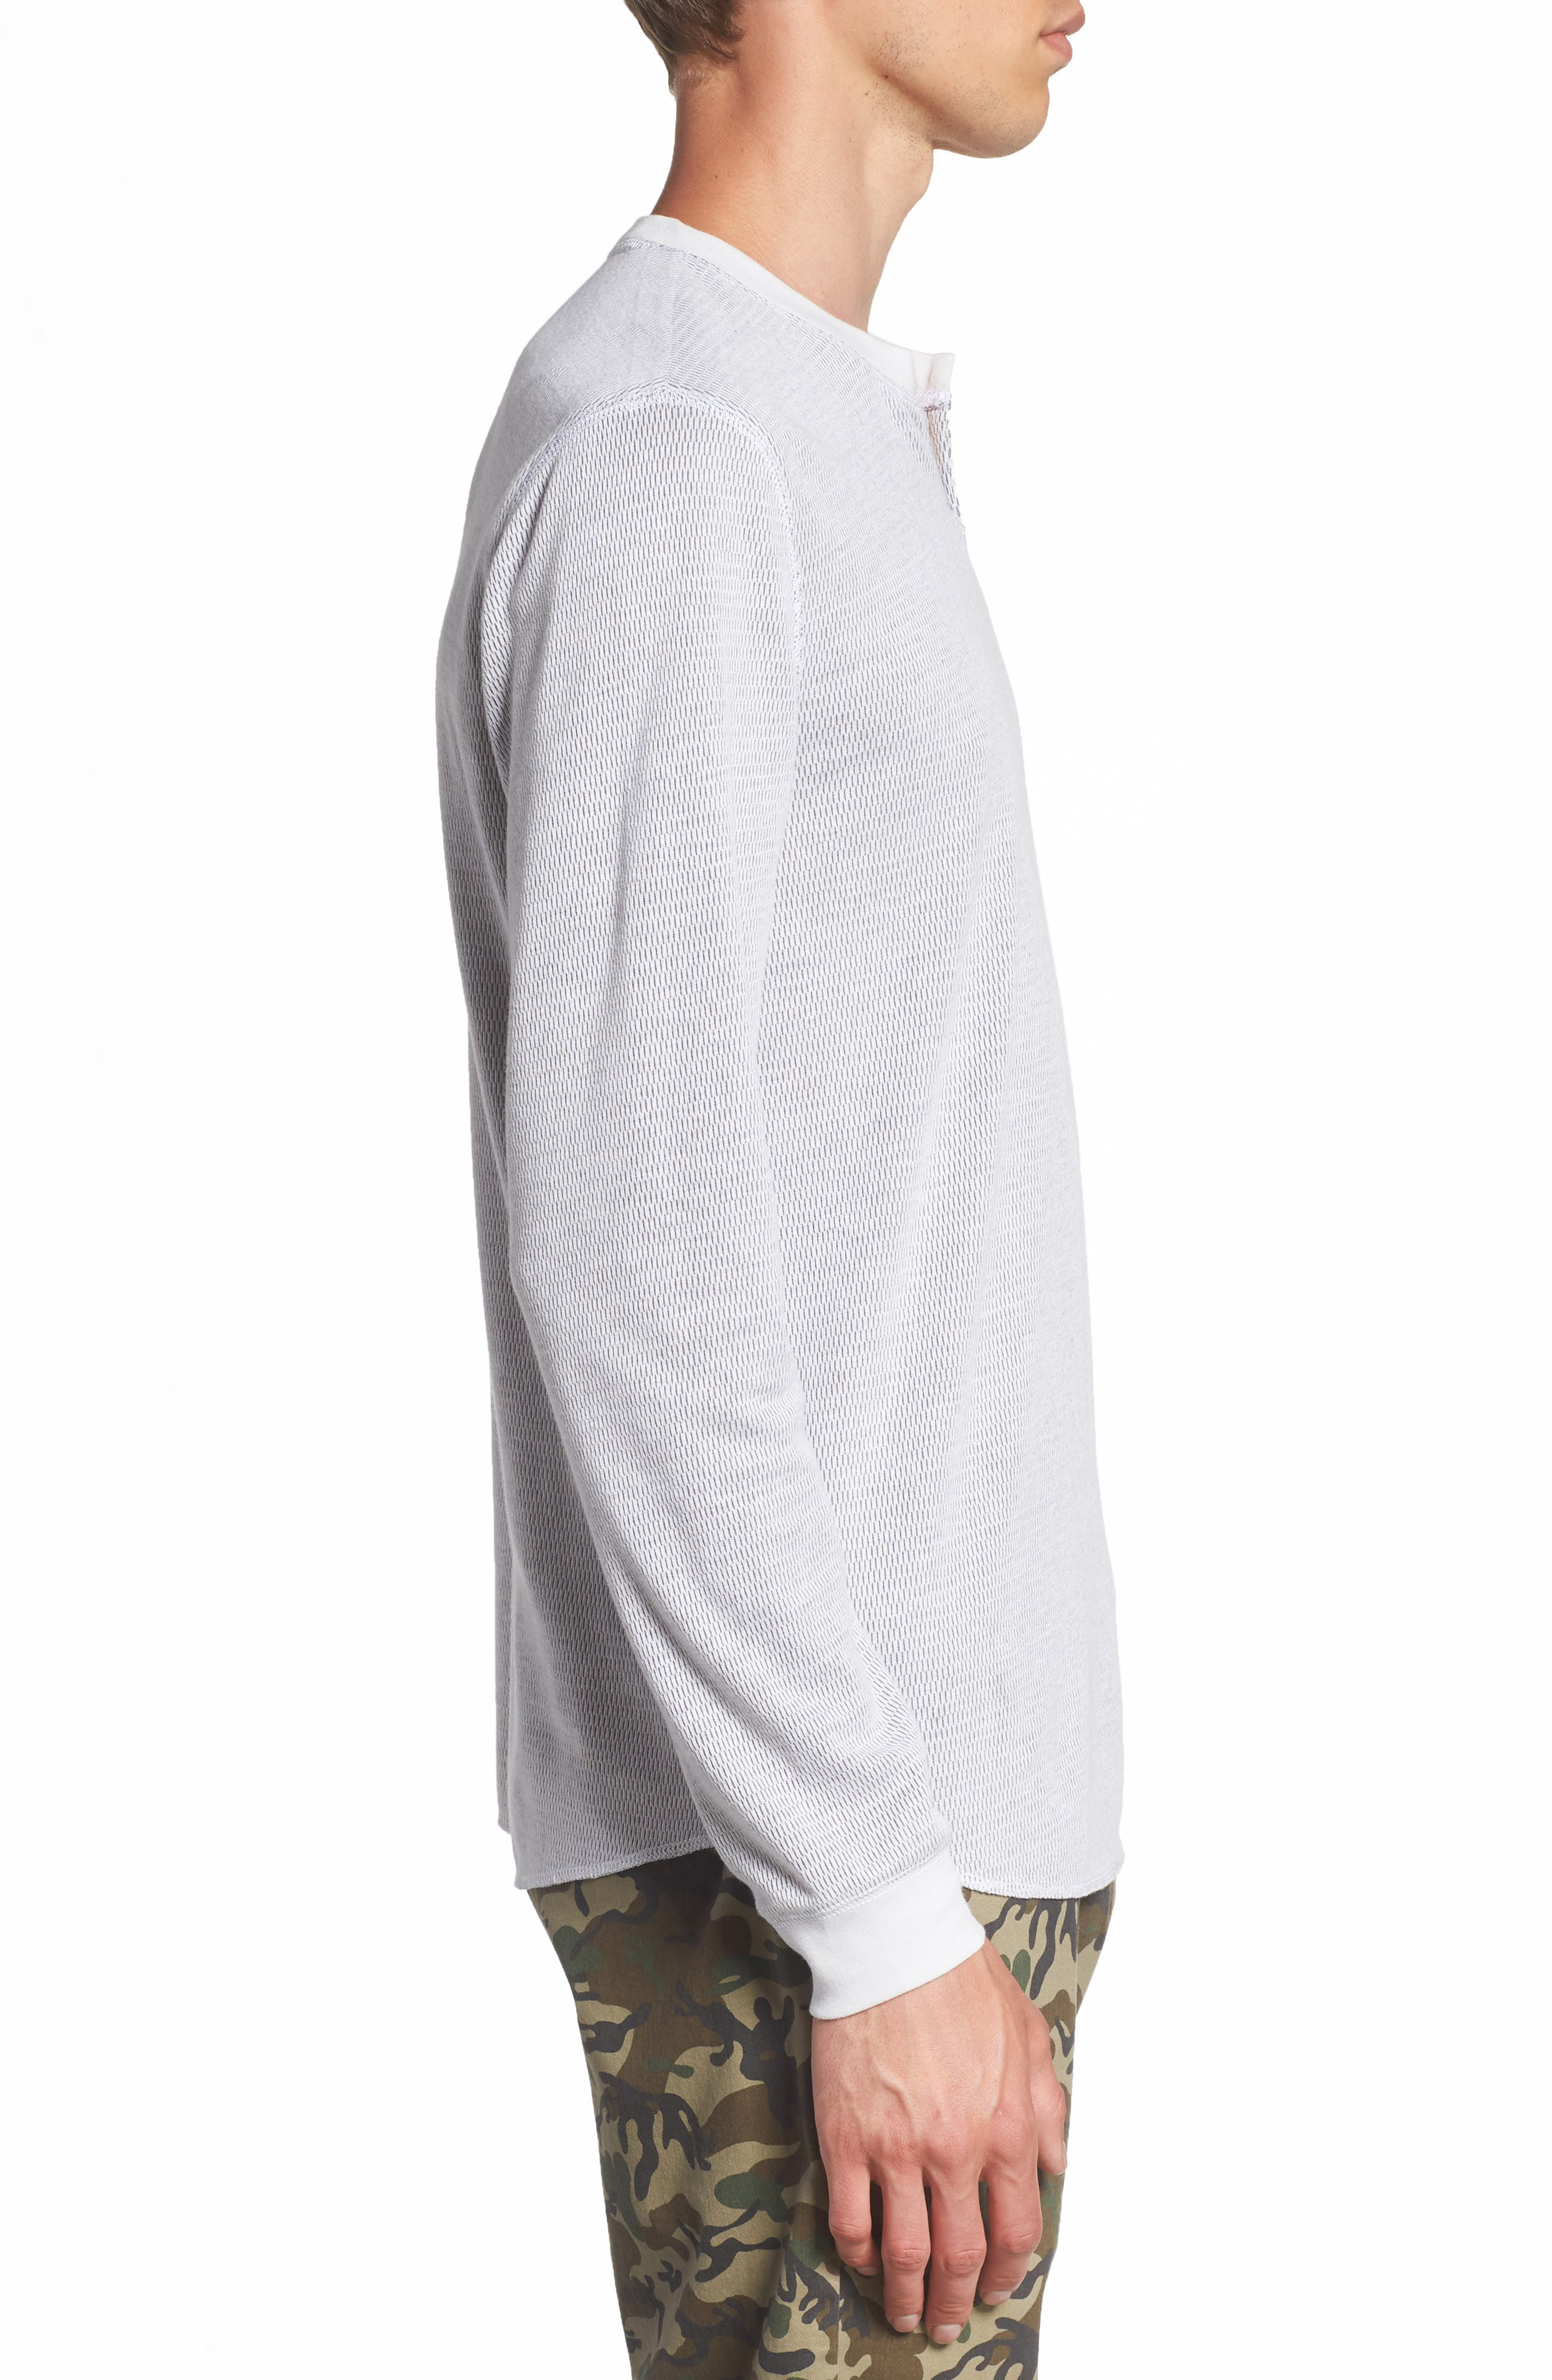 Alternate Image 3  - The Rail Notch Neck Thermal T-Shirt (2 for $50)